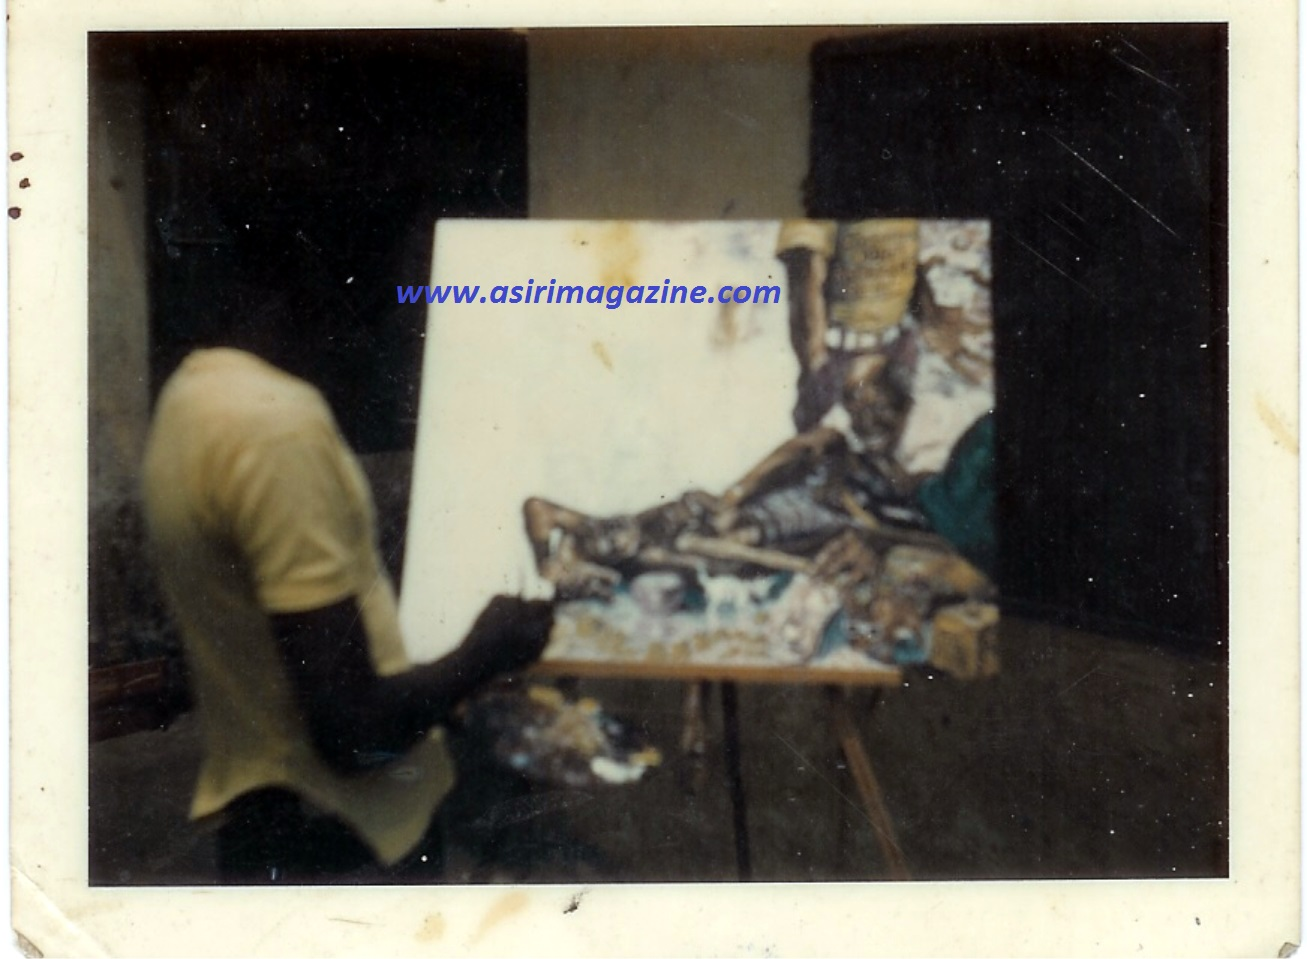 LEMI PAINTING FELA'S 'NO BREAD' COVER 2 (1975)